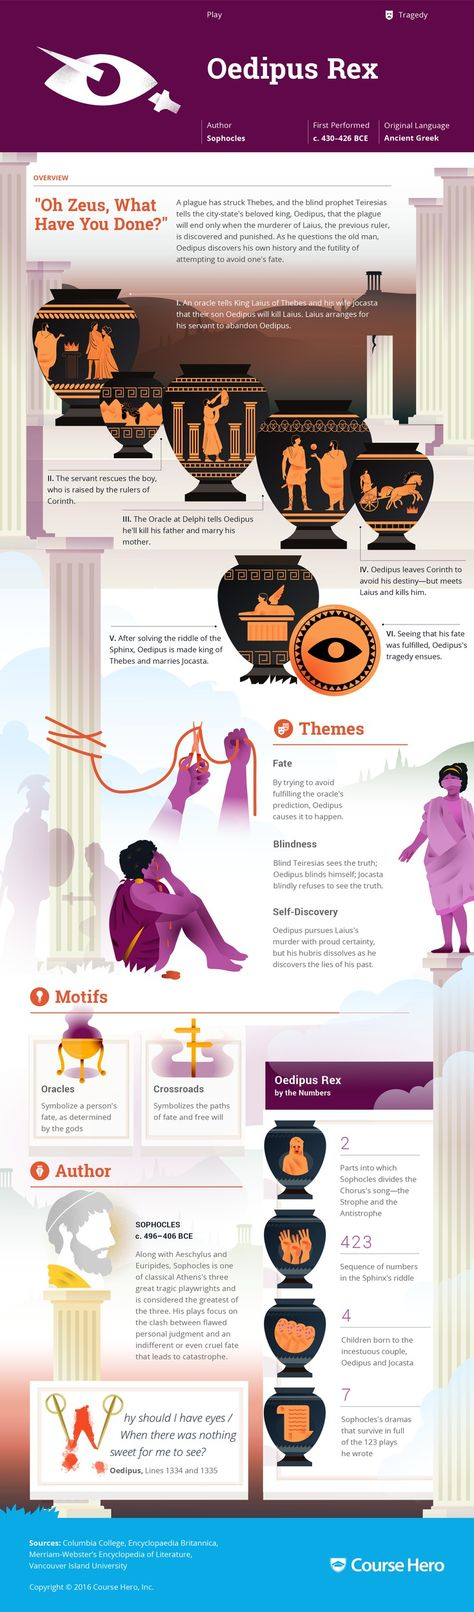 concept of blindness in oedipus rex a tragedy by sophocles Get everything you need to know about sight vs blindness in oedipus rex of sight vs blindness in oedipus rex from litcharts oedipus rex by sophocles.